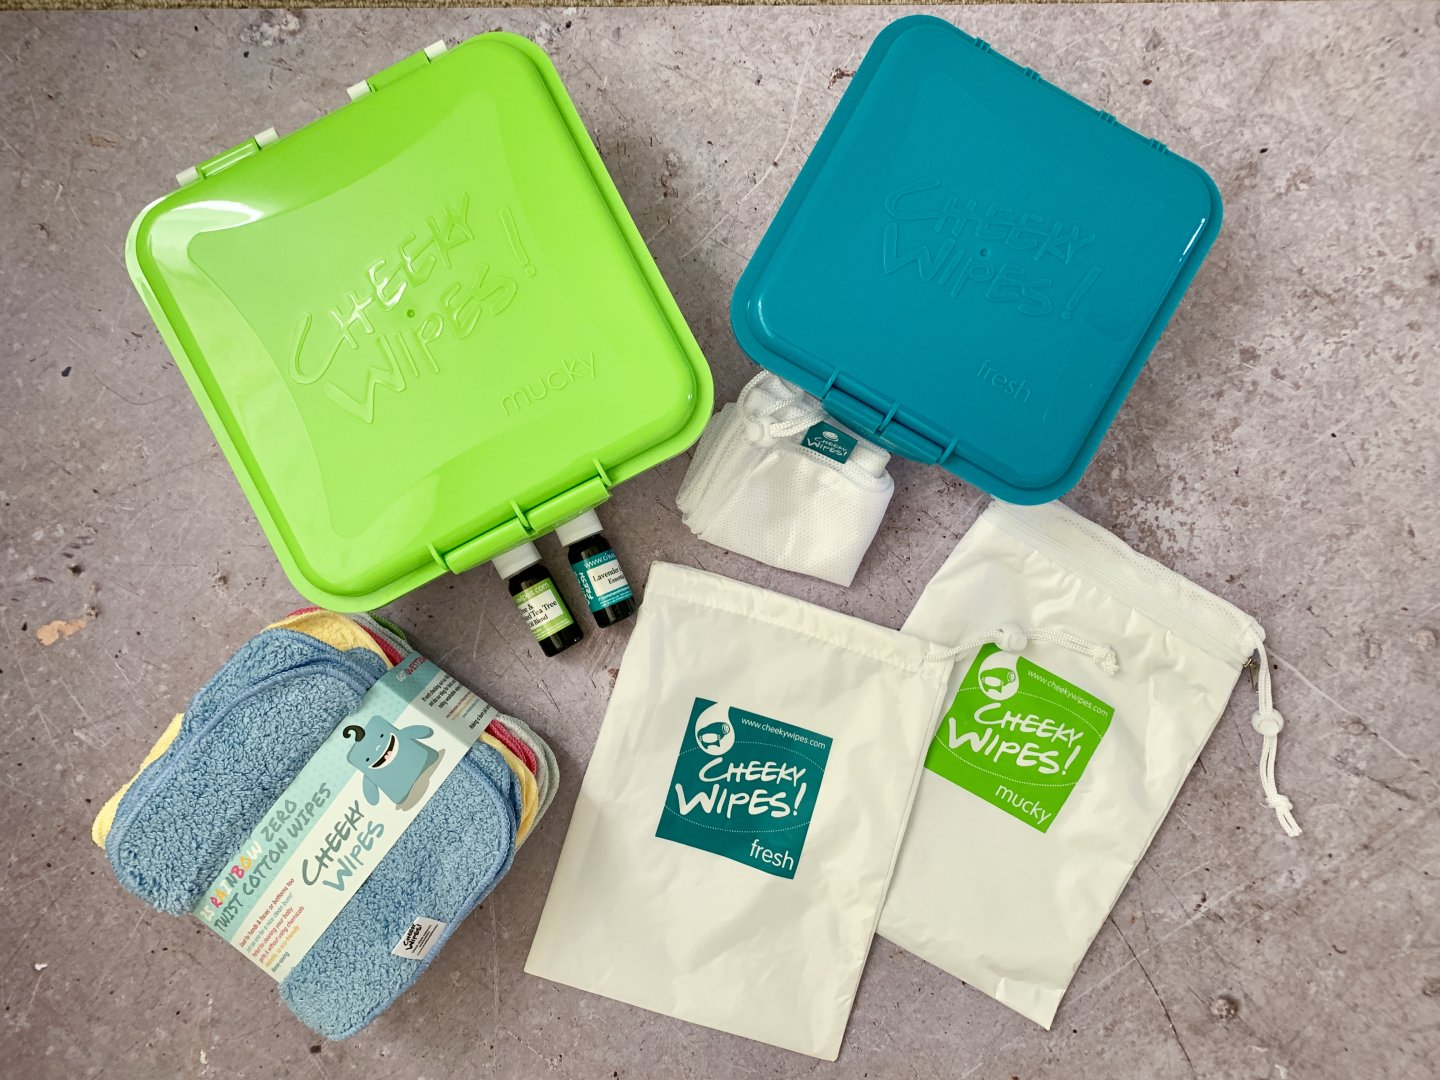 A photograph of everything included in the Cheeky Wipes kit.